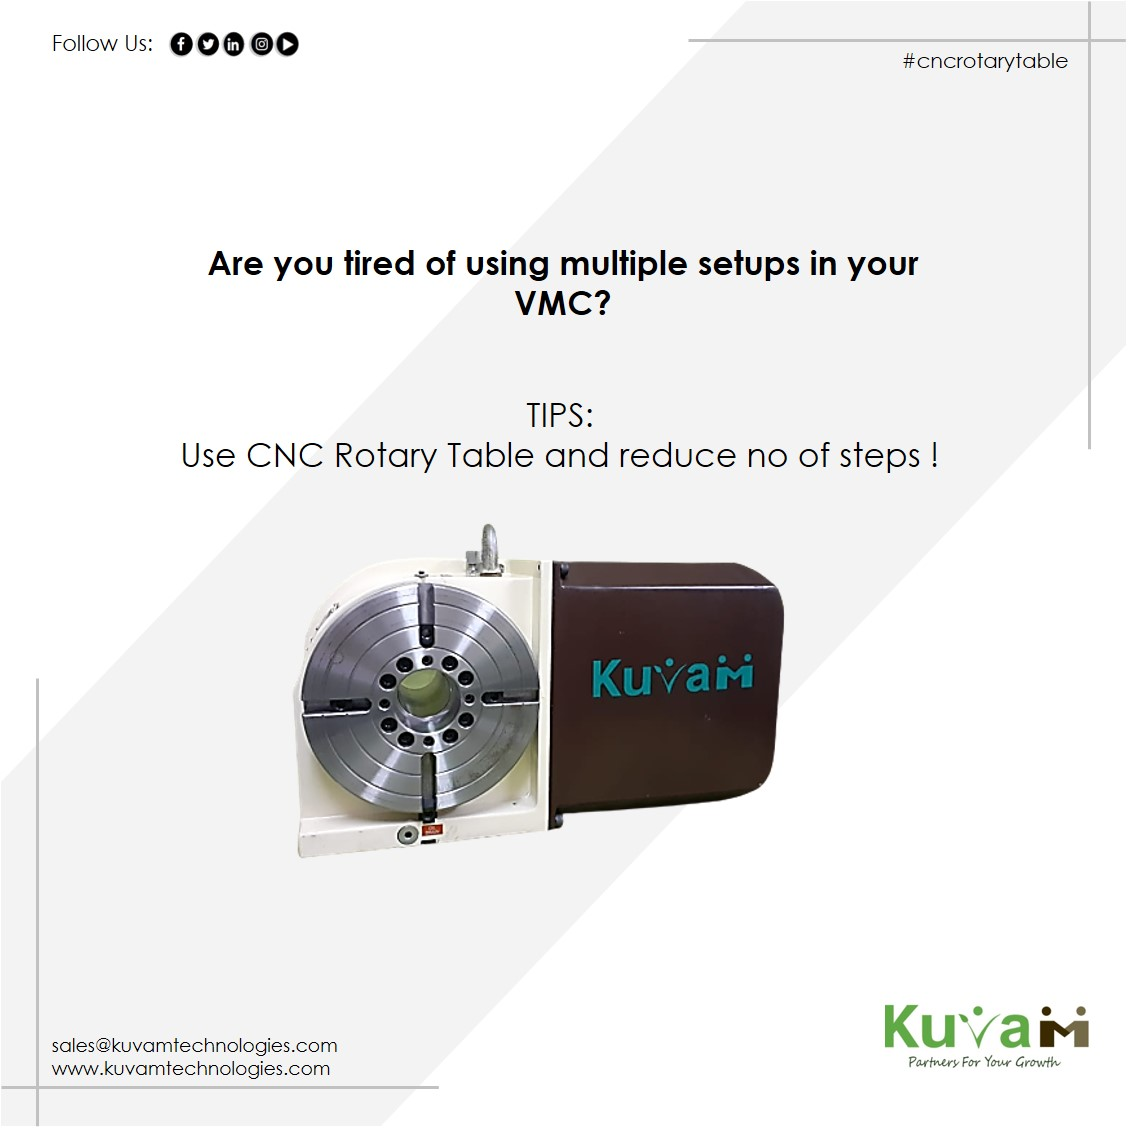 Are you tired of using multiple setups in your VMC? #kuvambrand #kuvamtechnologies #multiple #setups #vmc #hmc #rotarytable #cncrotarytable #rotary #productivity #solutions https://t.co/55mhiF0cBW